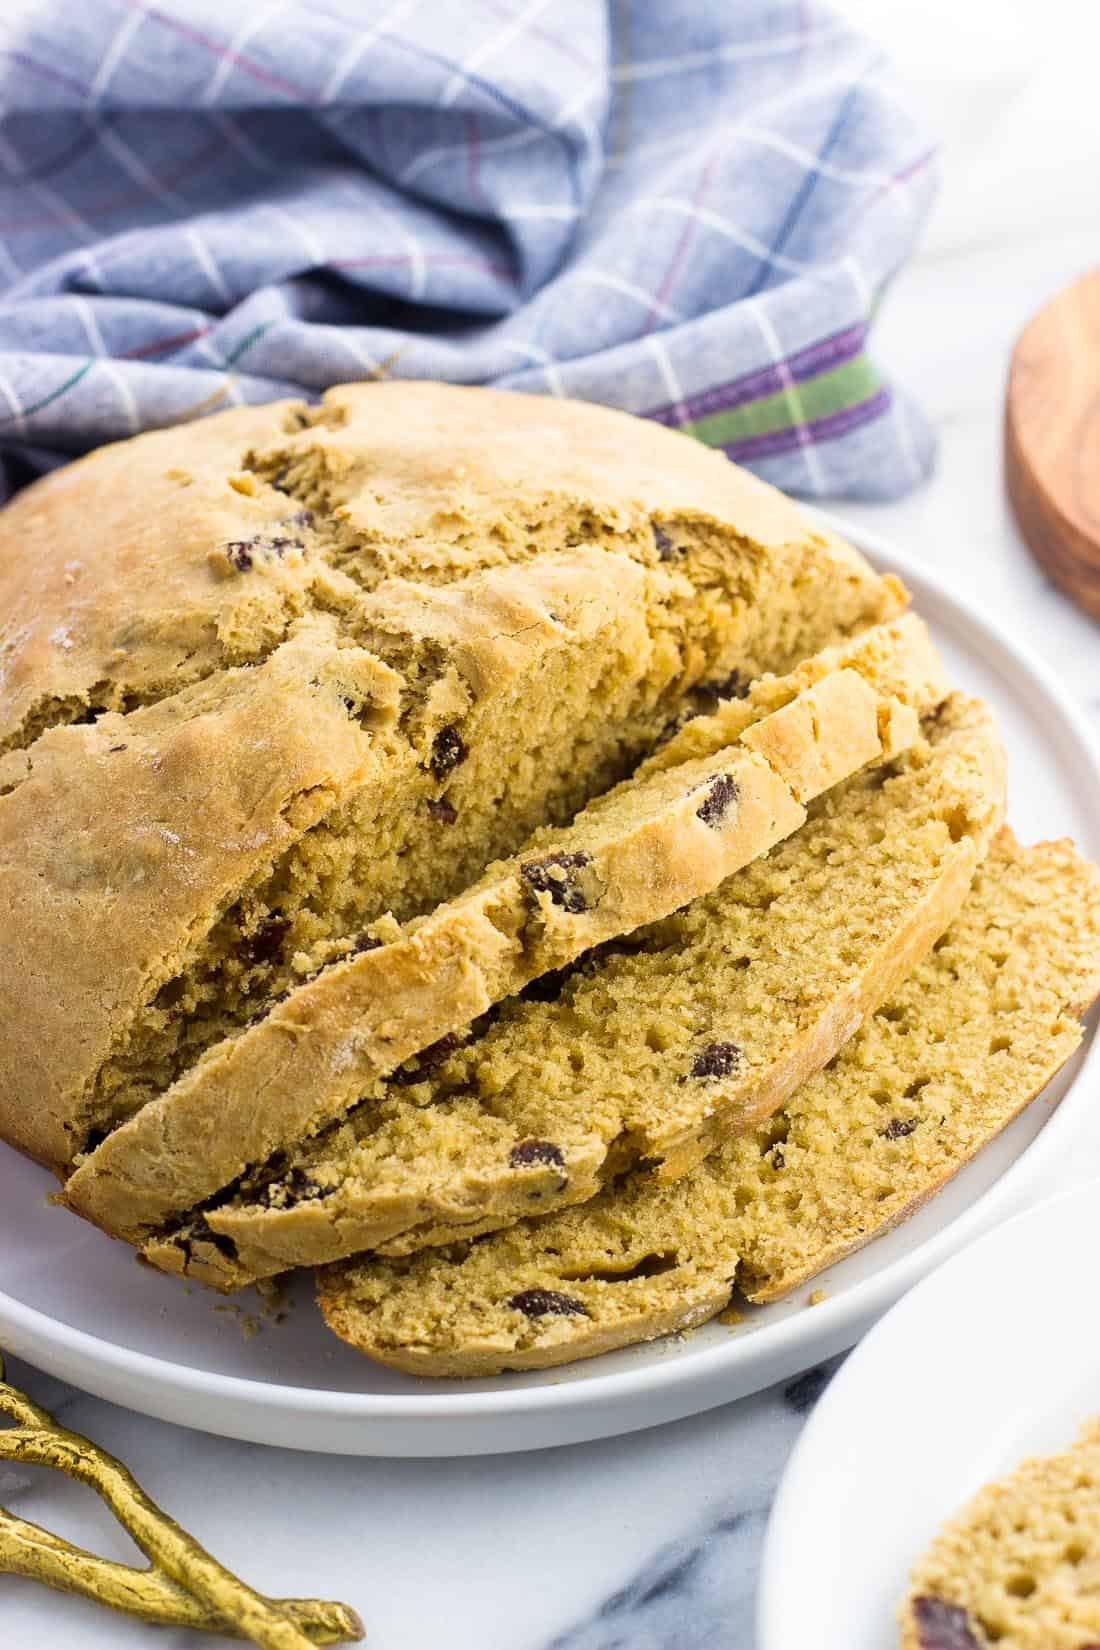 A half-sliced loaf of maple Irish soda bread on a plate